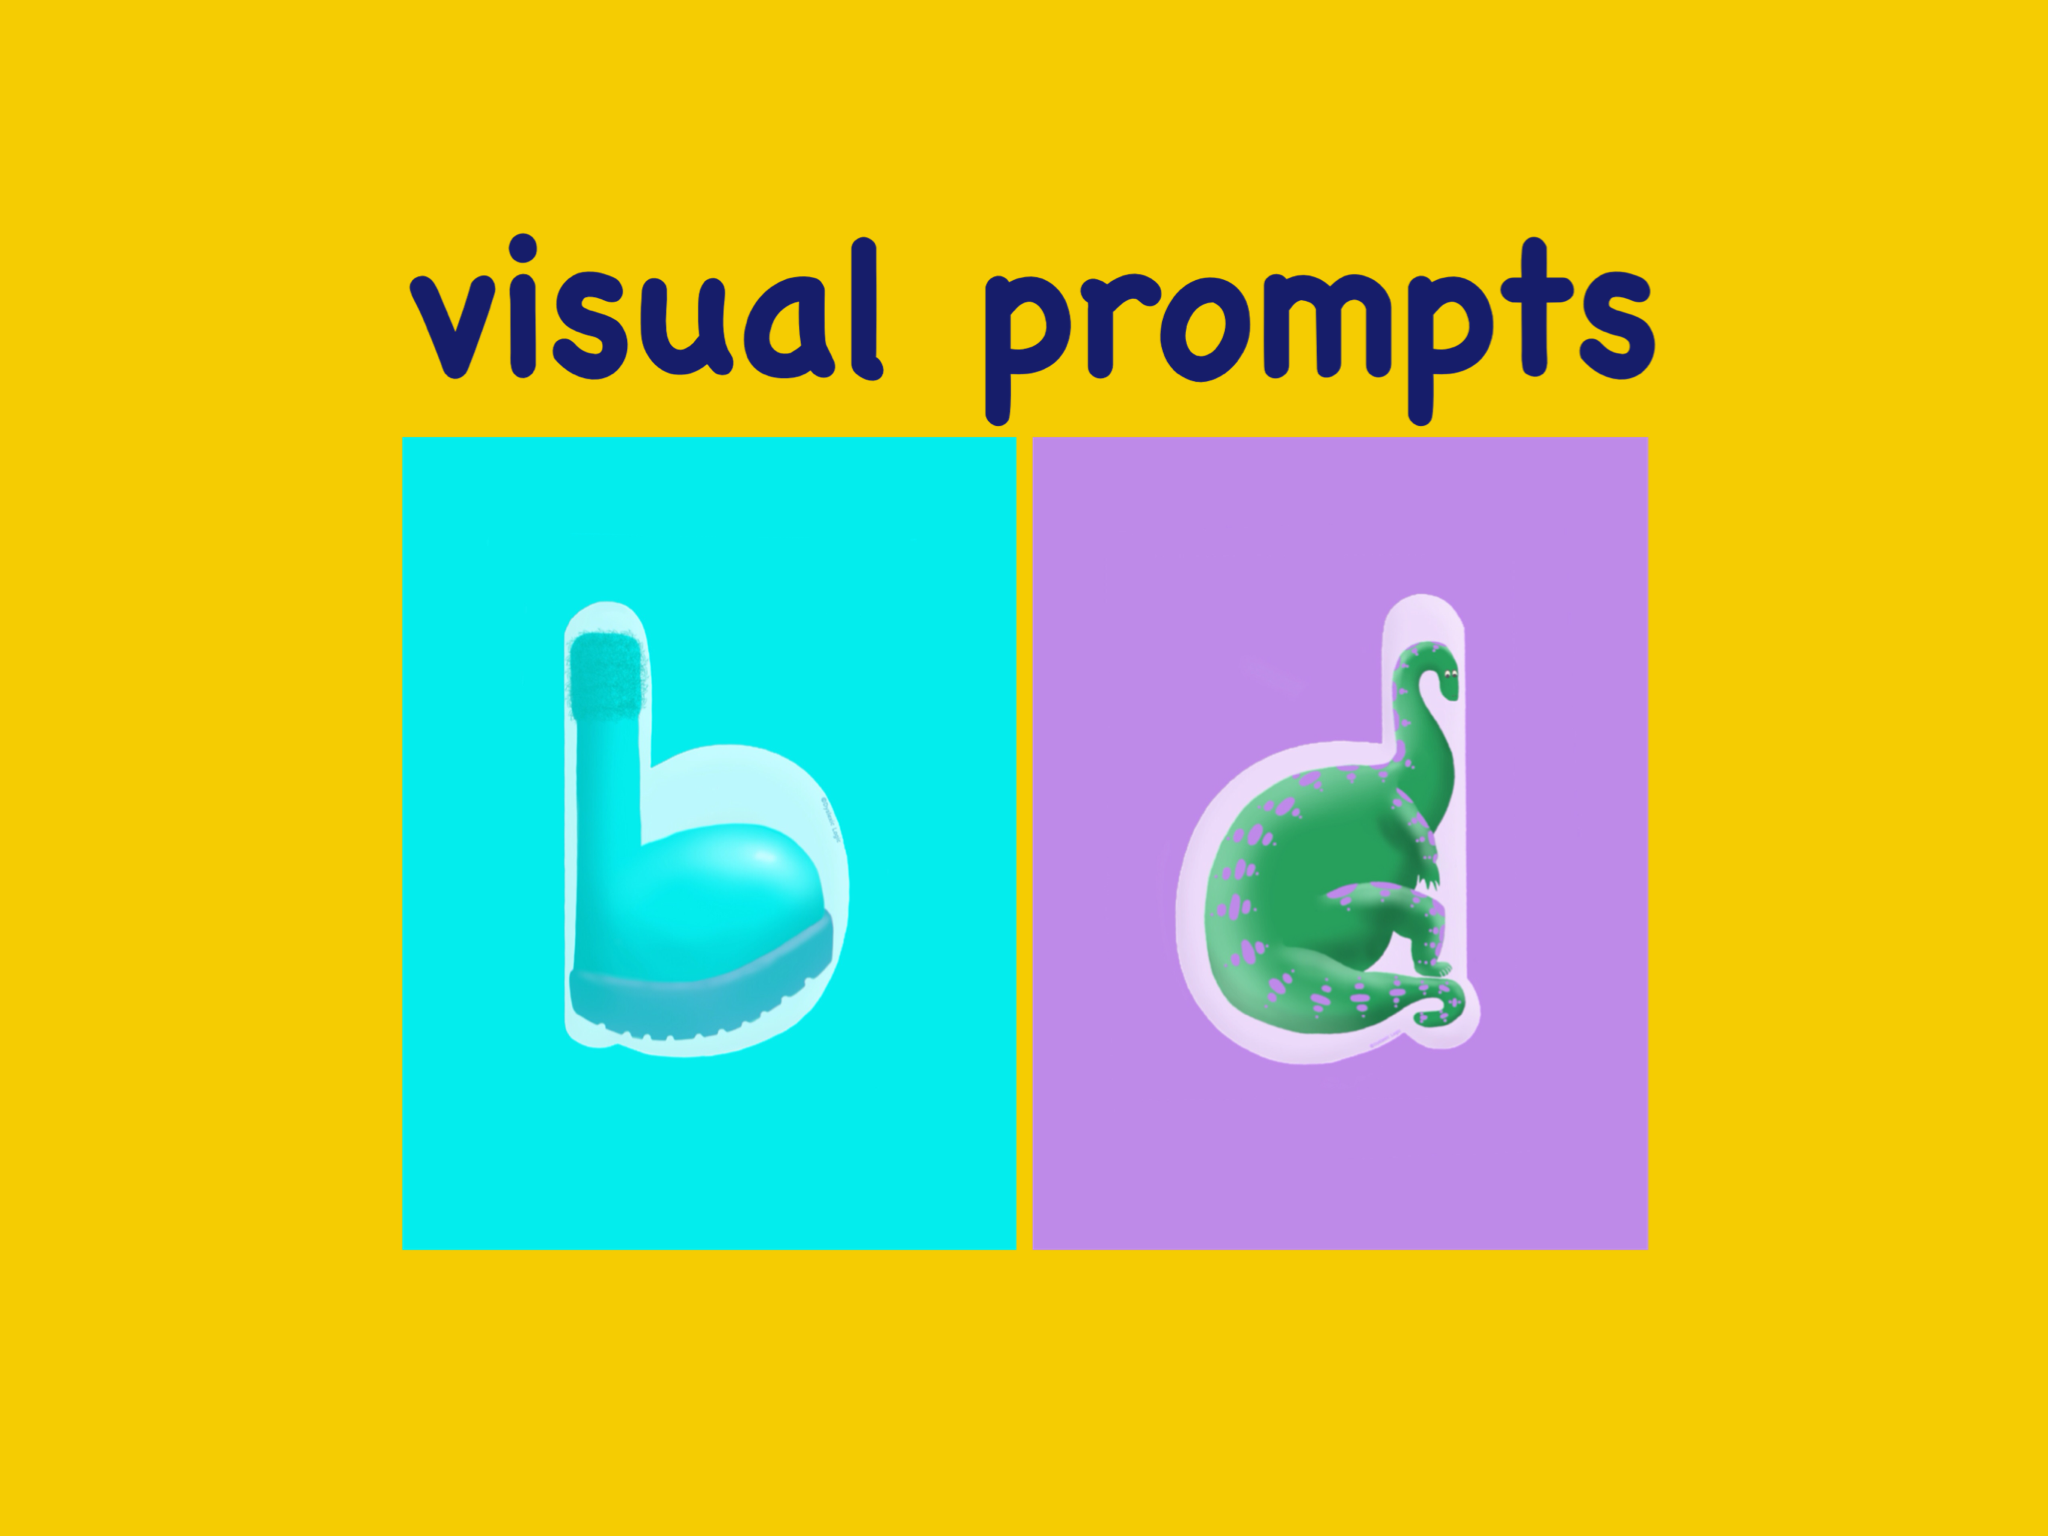 visual prompts to support memeory where the letter shapes are similar.